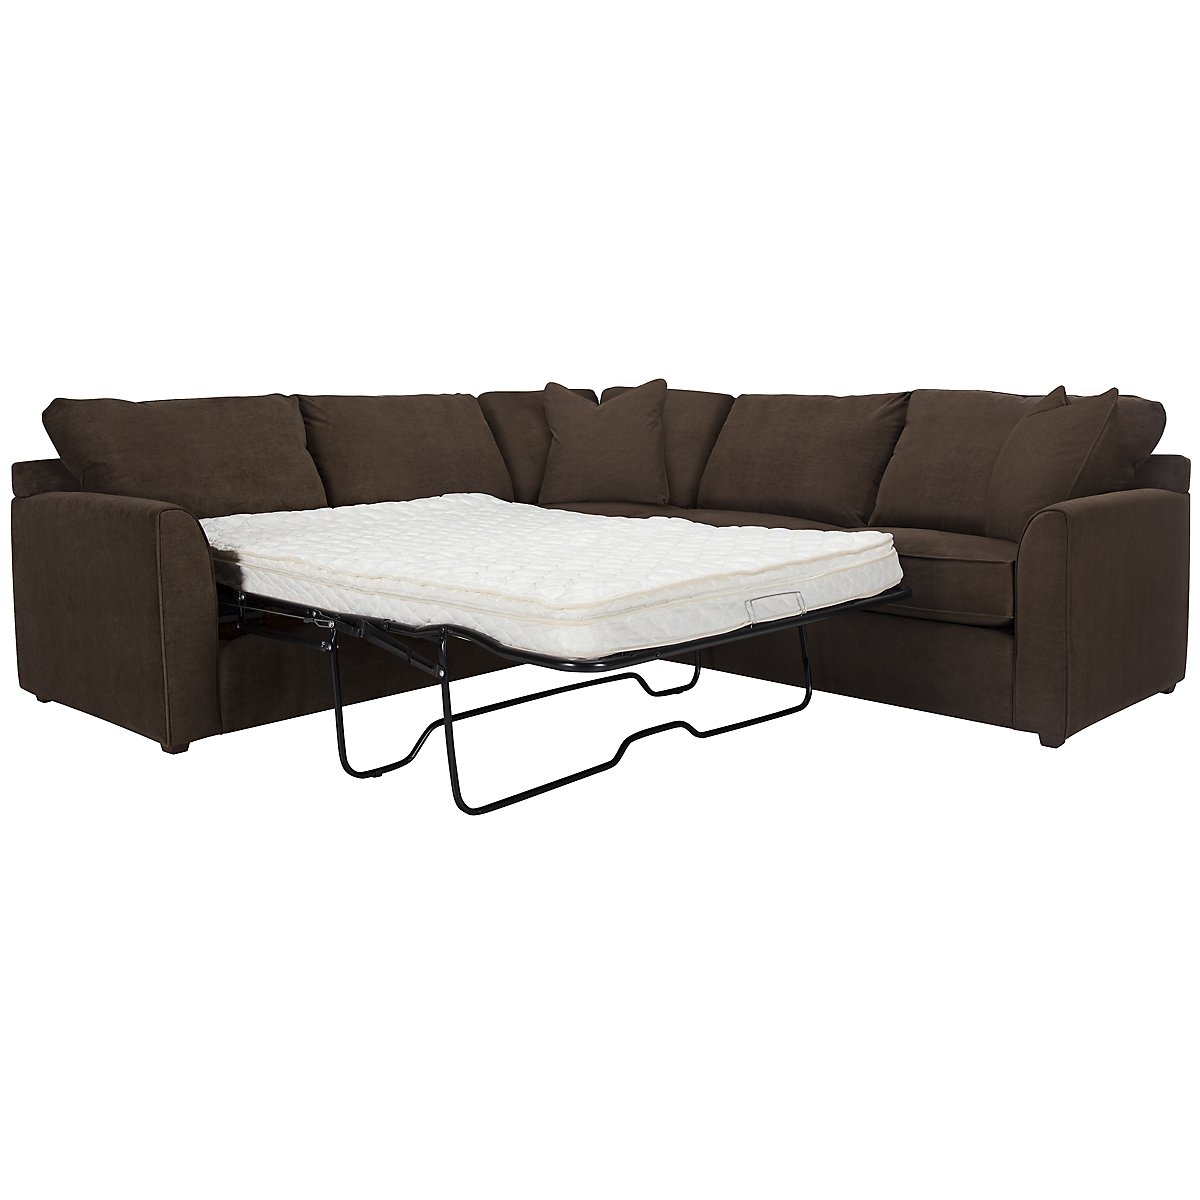 Express3 Dk Brown Microfiber Two-Arm Left Innerspring Sleeper Sectional